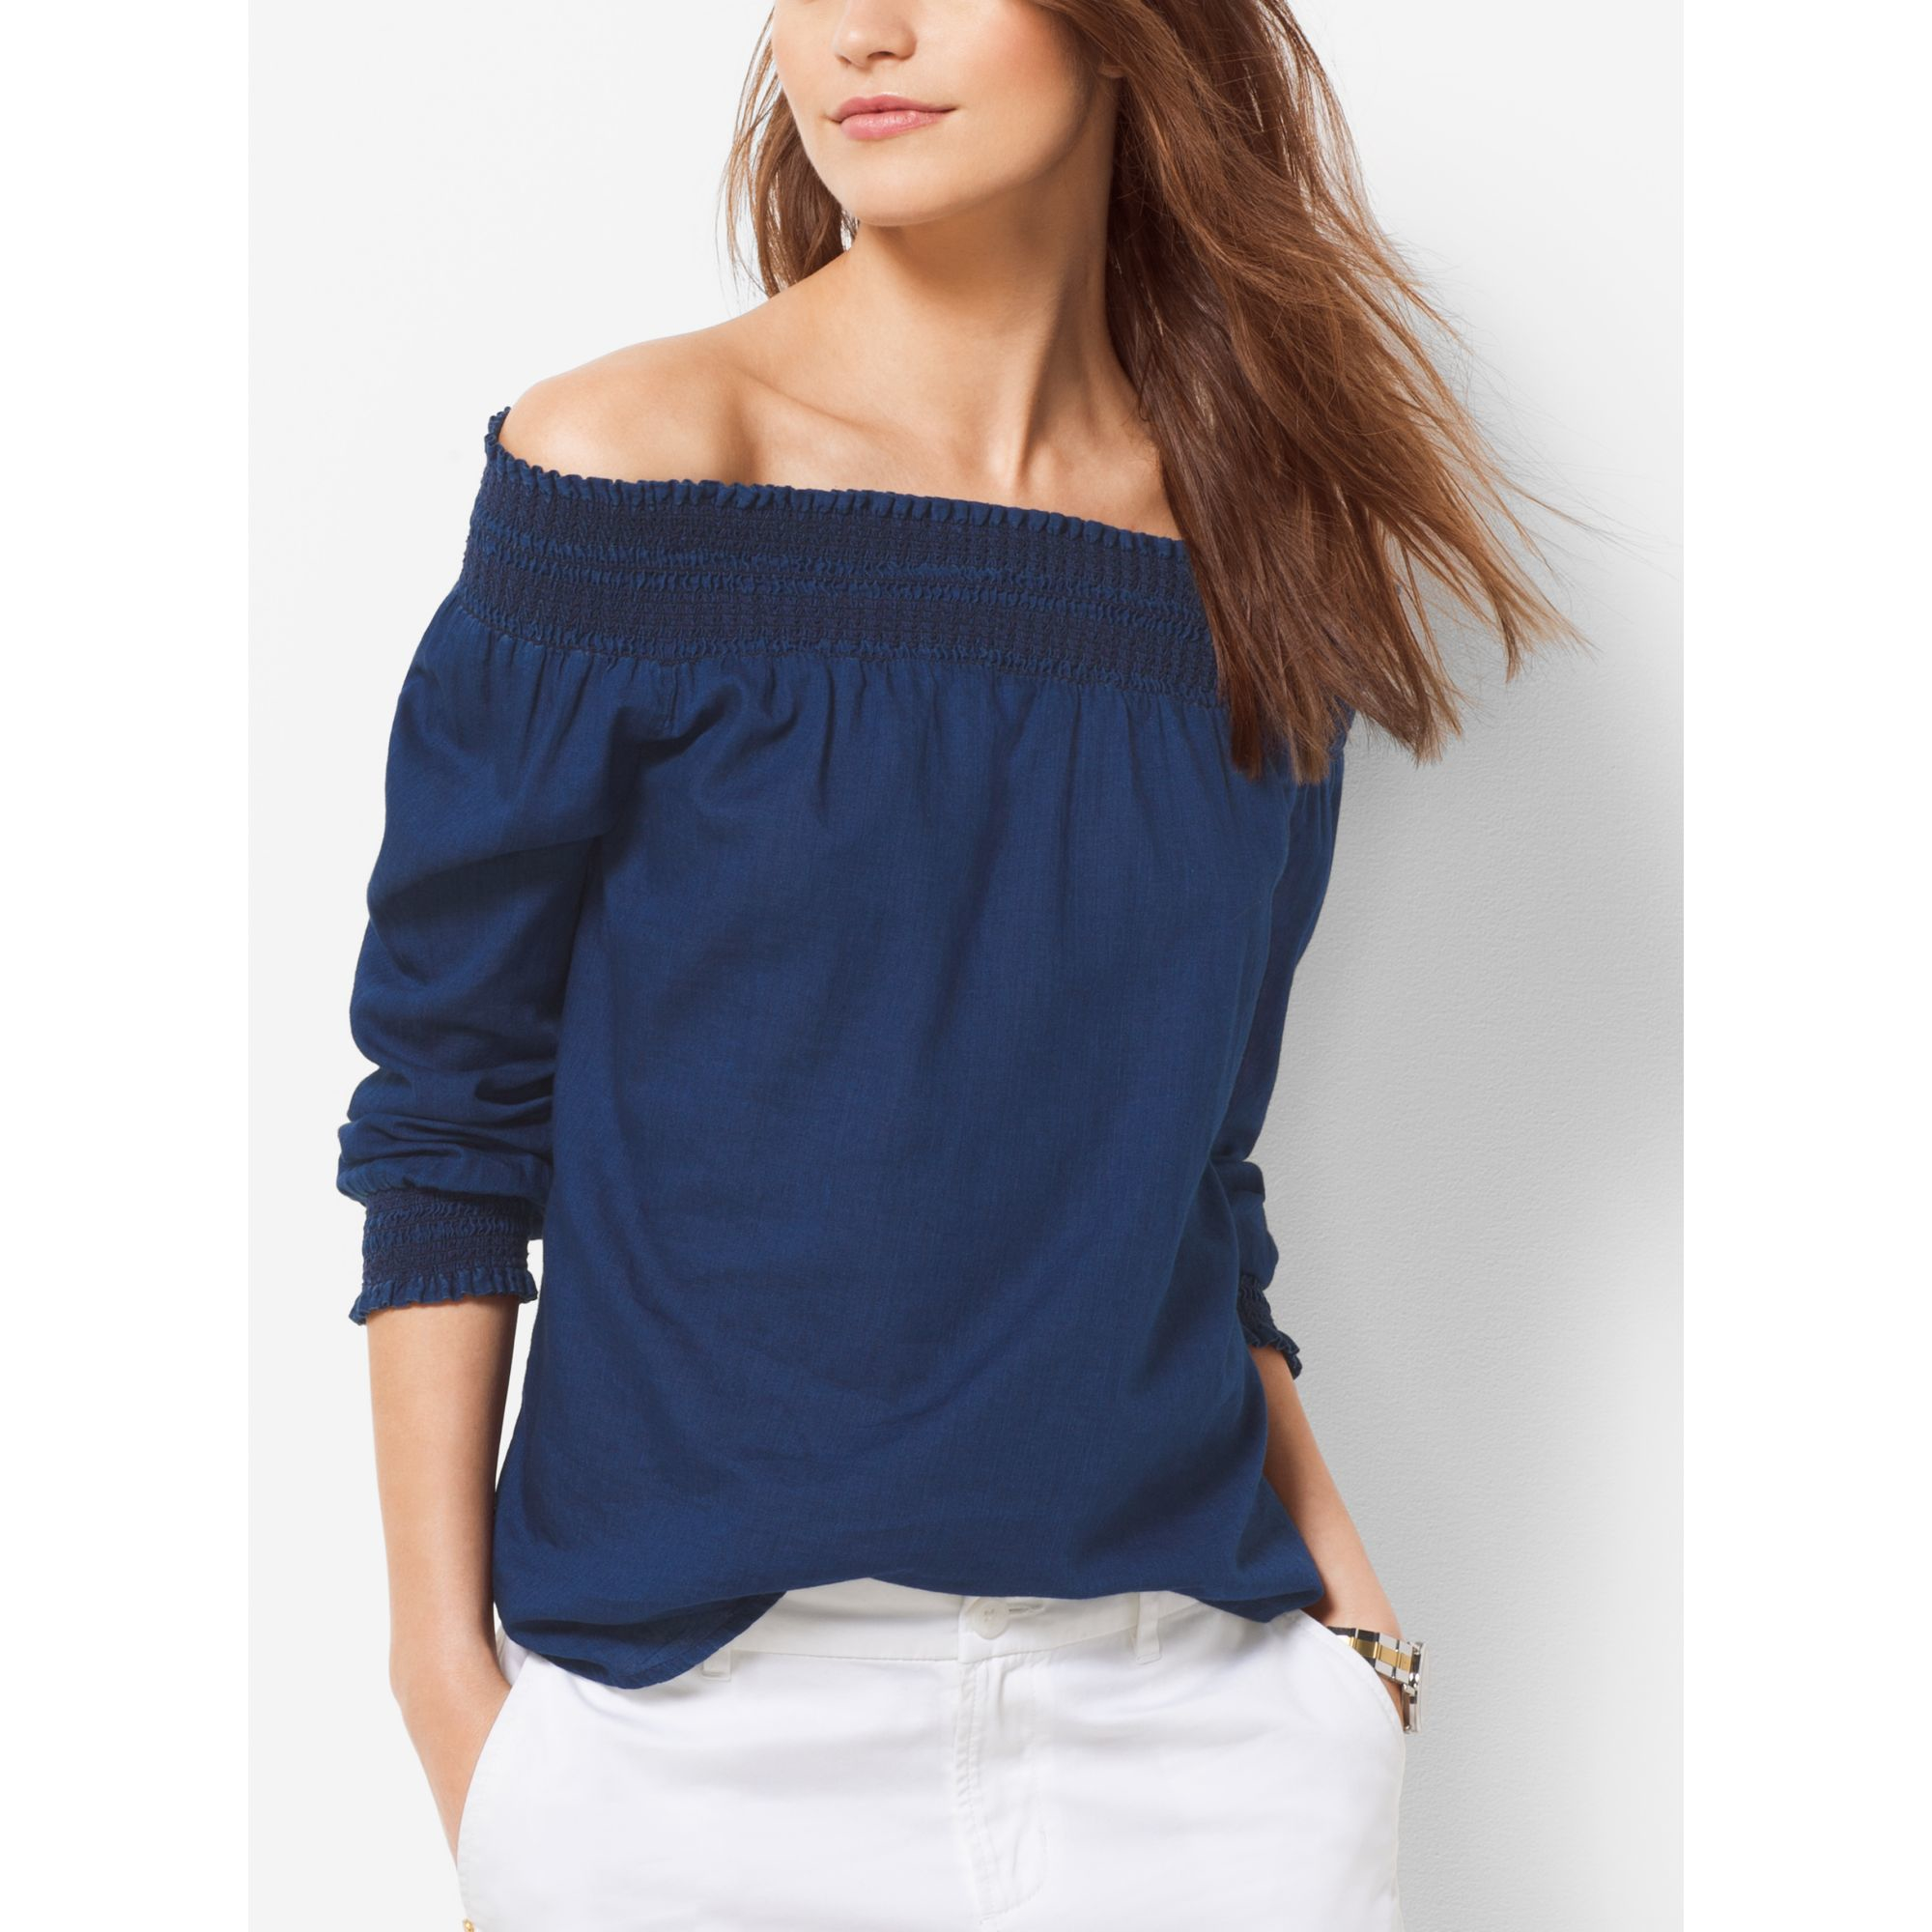 f05628d31f992 Lyst - Michael Kors Off-the-shoulder Blouse in Blue